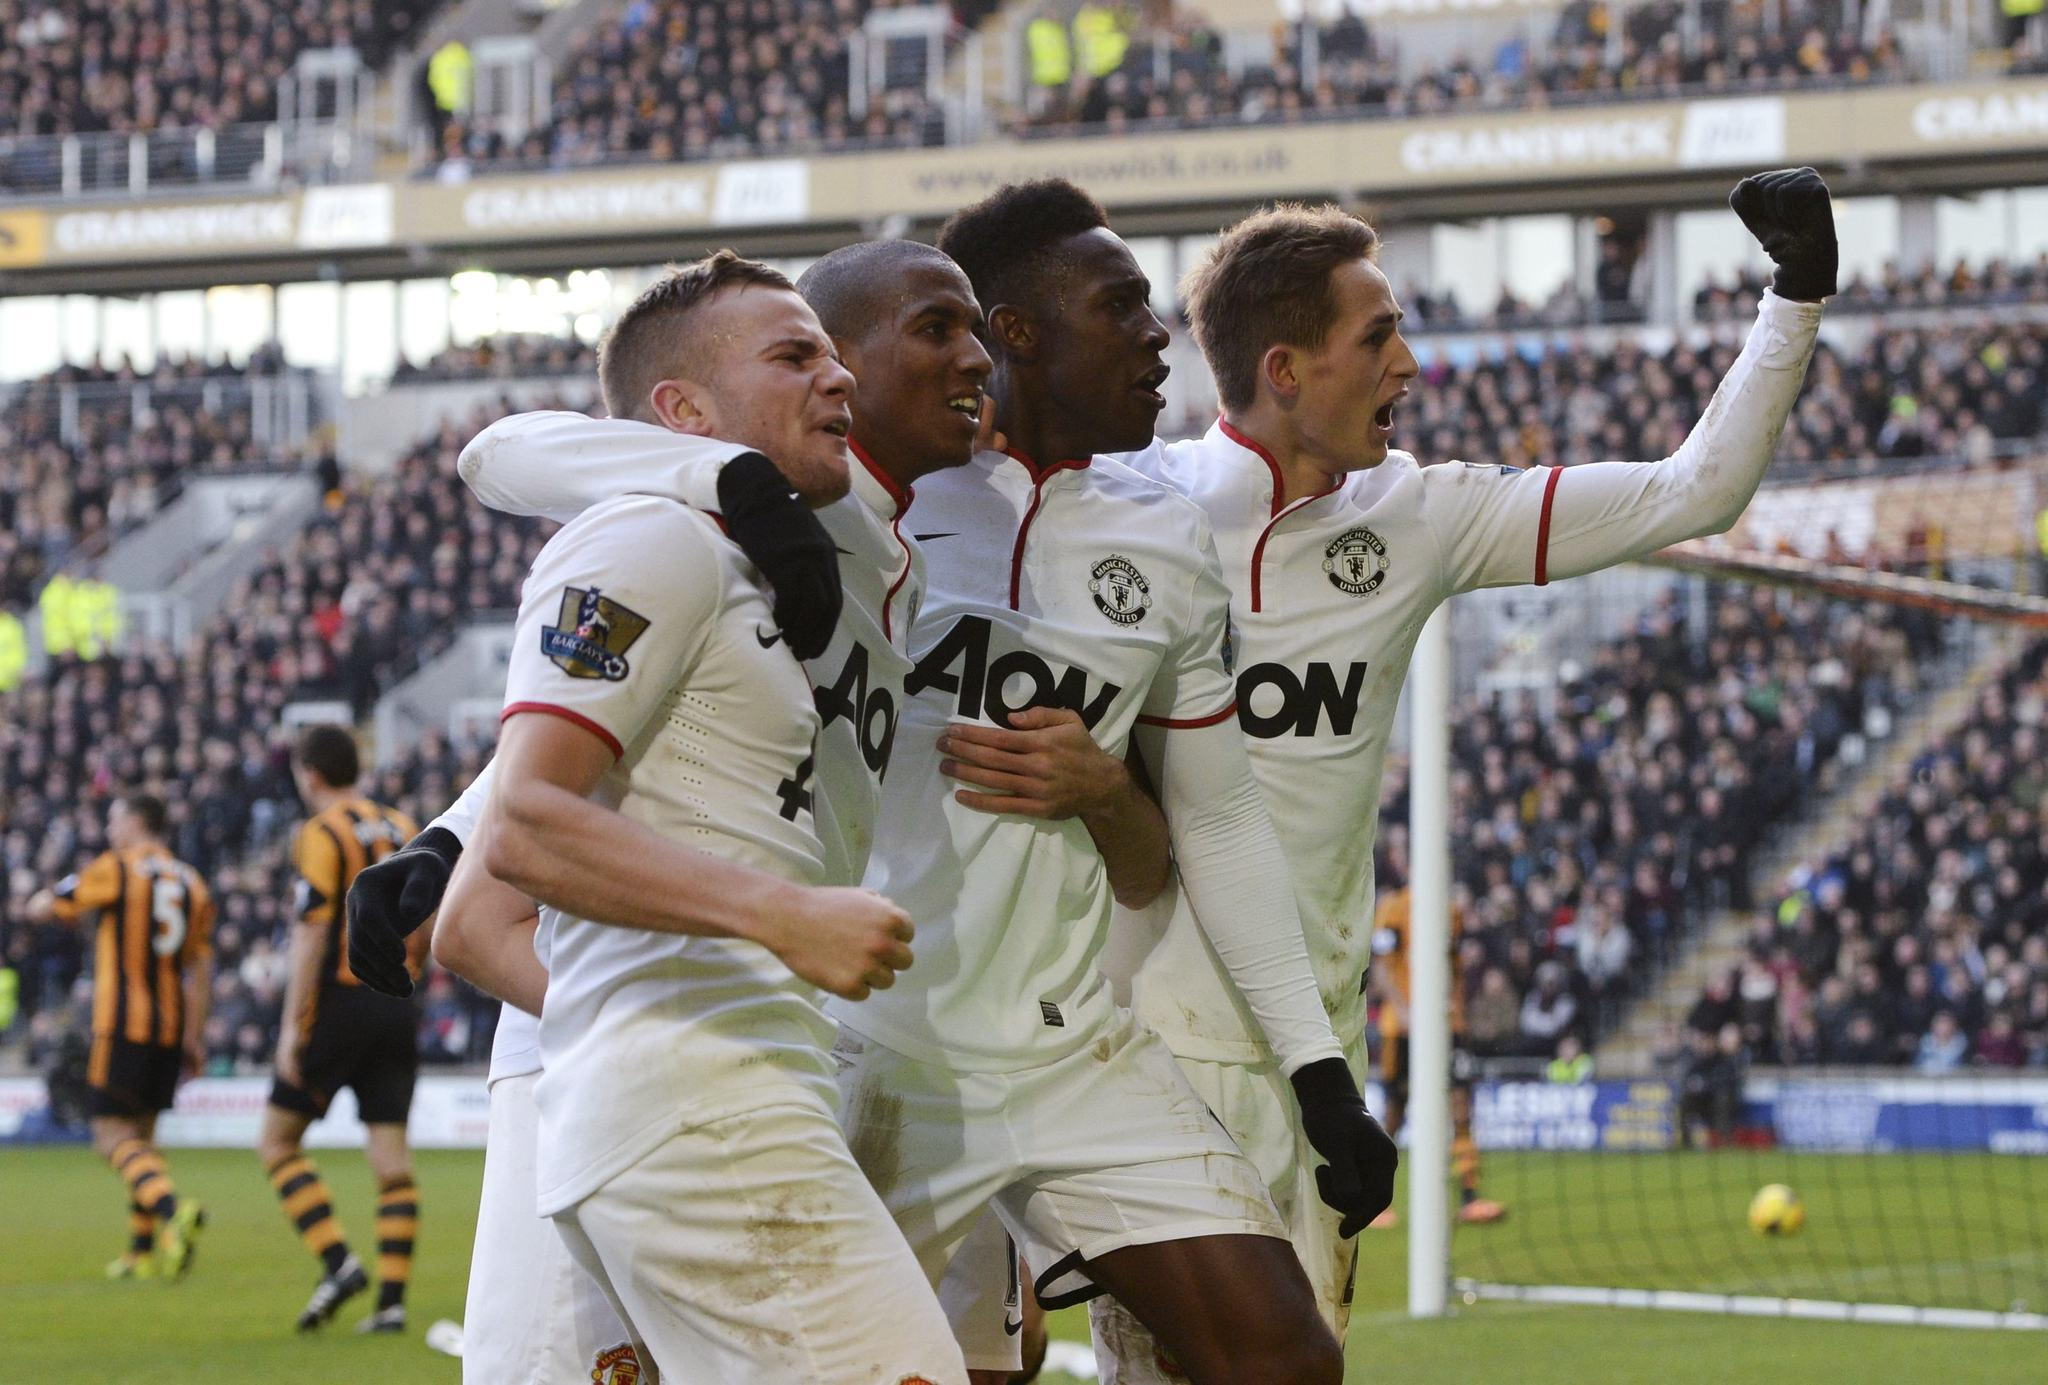 Manchester United players (L-R) Tom Cleverley, Ashley Young, Danny Welbeck and Adnan Januzaj celebrate an own goal by Hull City's James Chester (not pictured) during their English Premier League soccer match at the KC Stadium in Hull, northern England December 26, 2013. REUTERS/Nigel Roddis